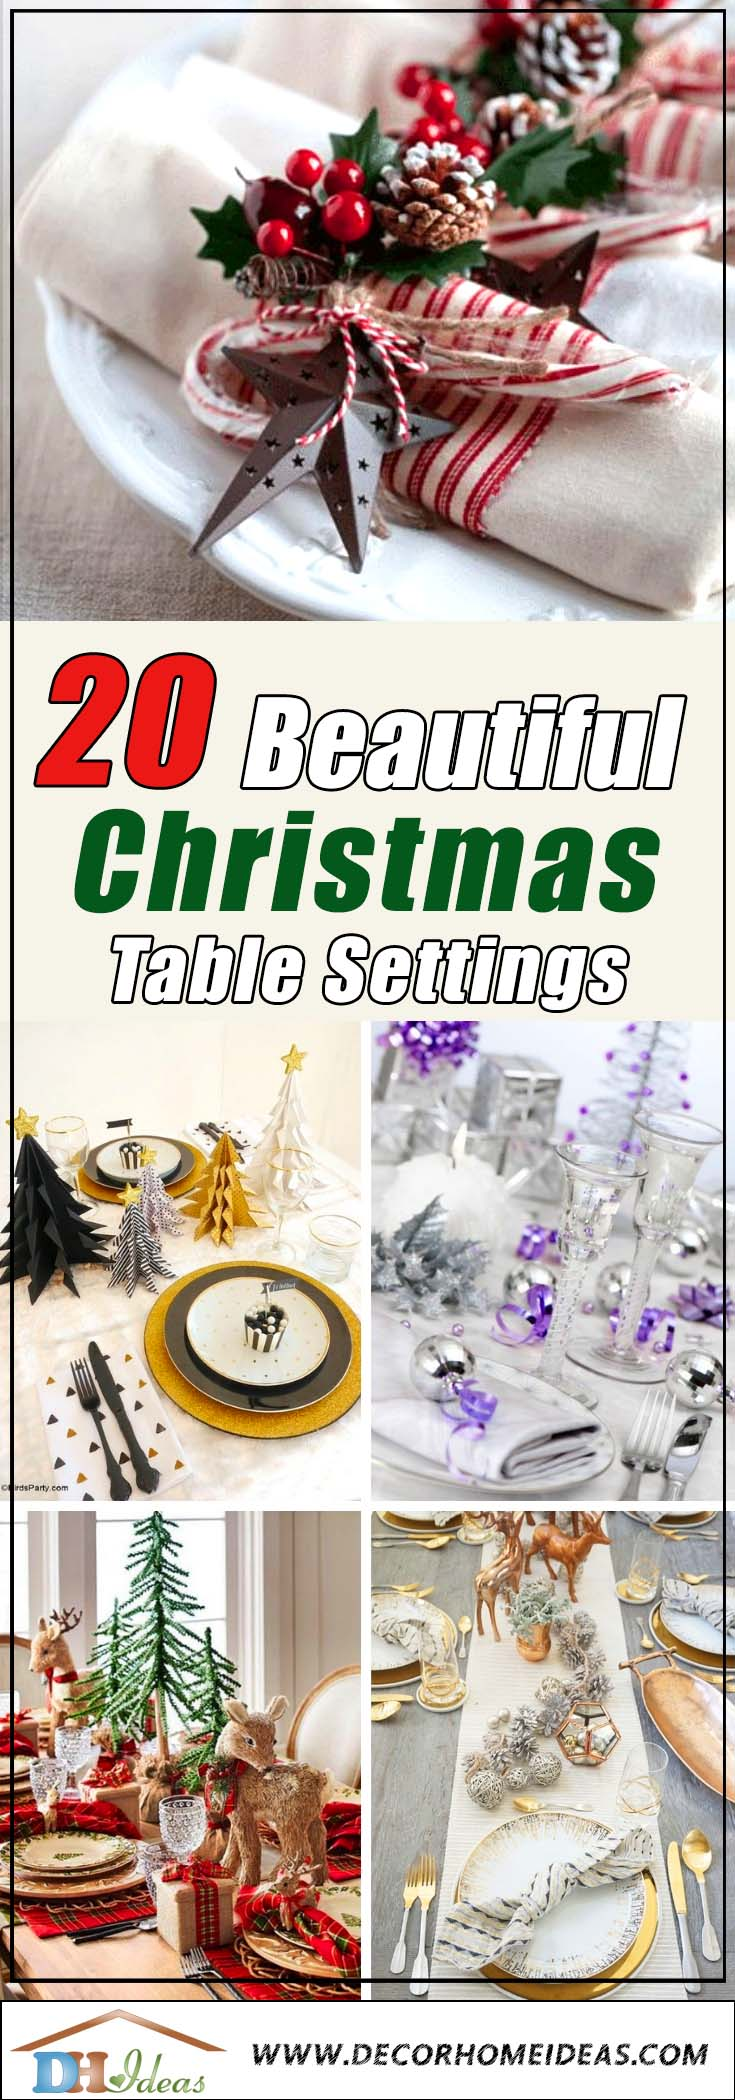 20 Beautiful Christmas Table Setting Ideas To Bring Warmth At Home | #xmas #x-mas #christmas #tablesetting #homedecor #decoratingideas #centerpieces #festive #decorhomeideas